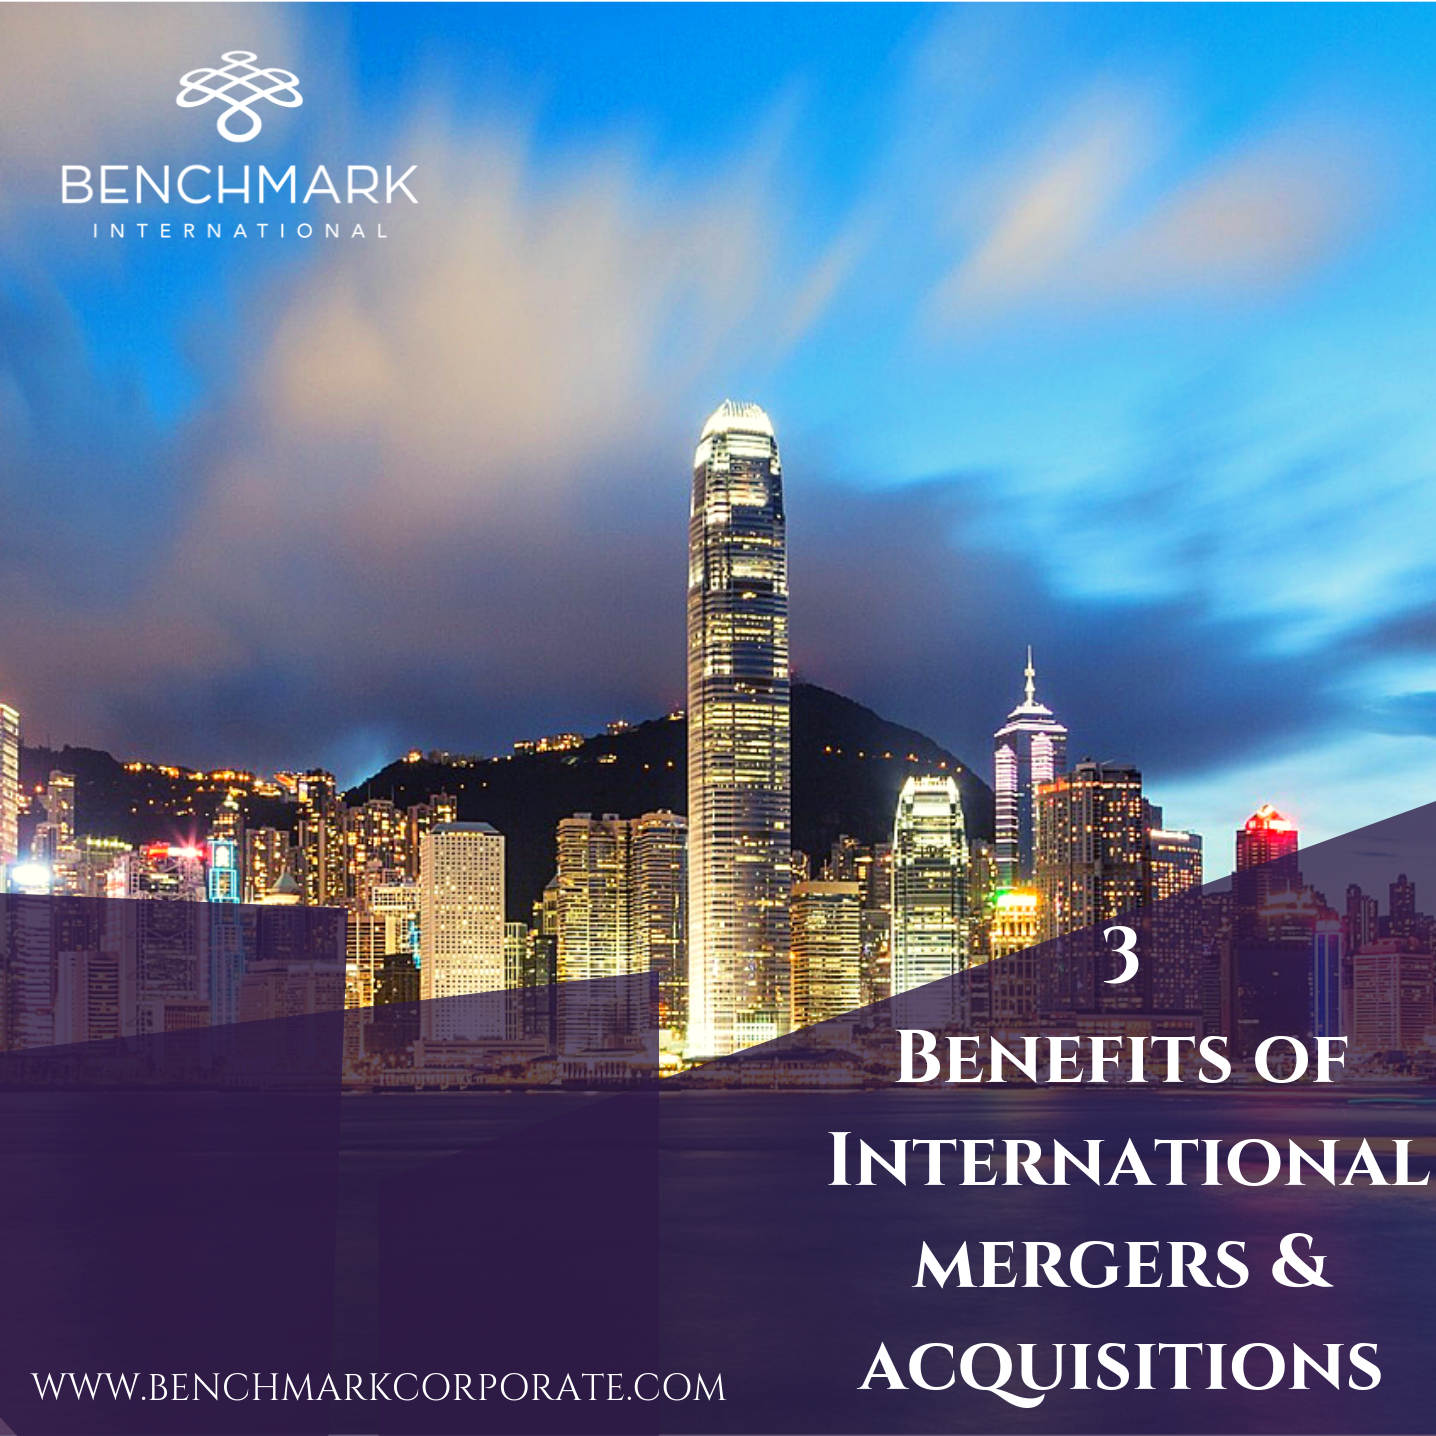 Benefits of International Mergers & Acquisitions